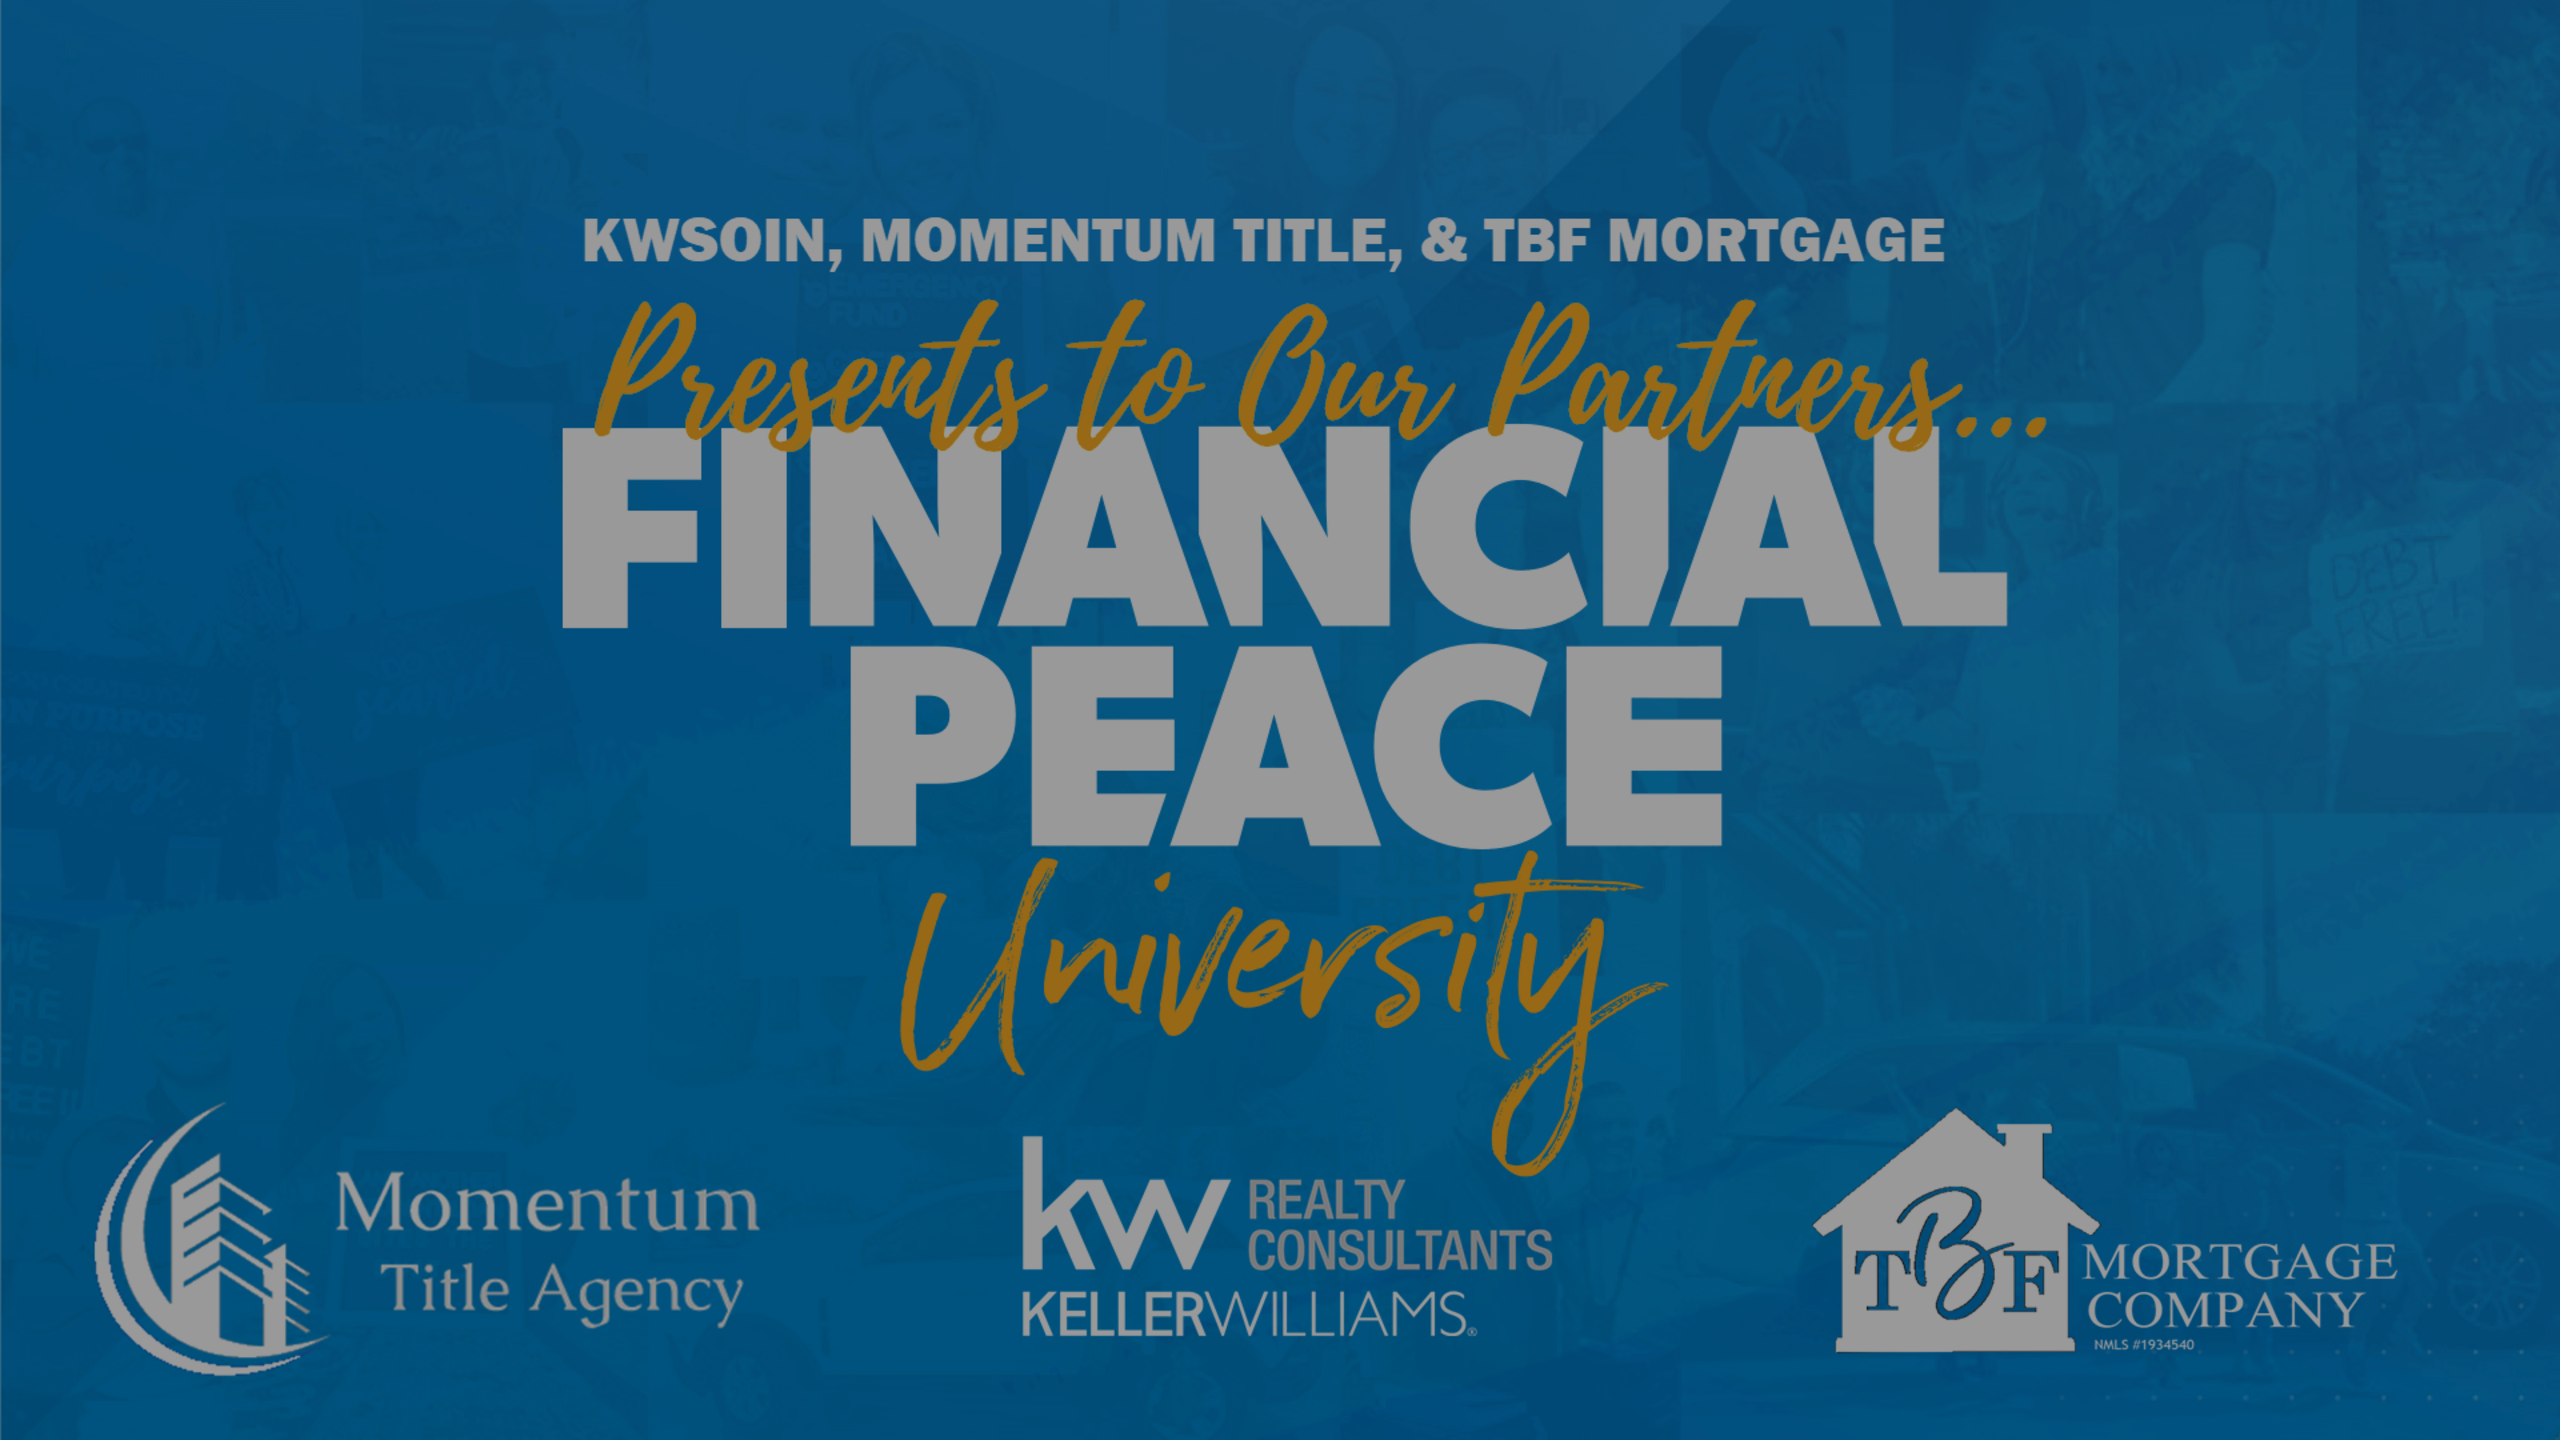 KWSOIN Ramsey+ Financial Peace University